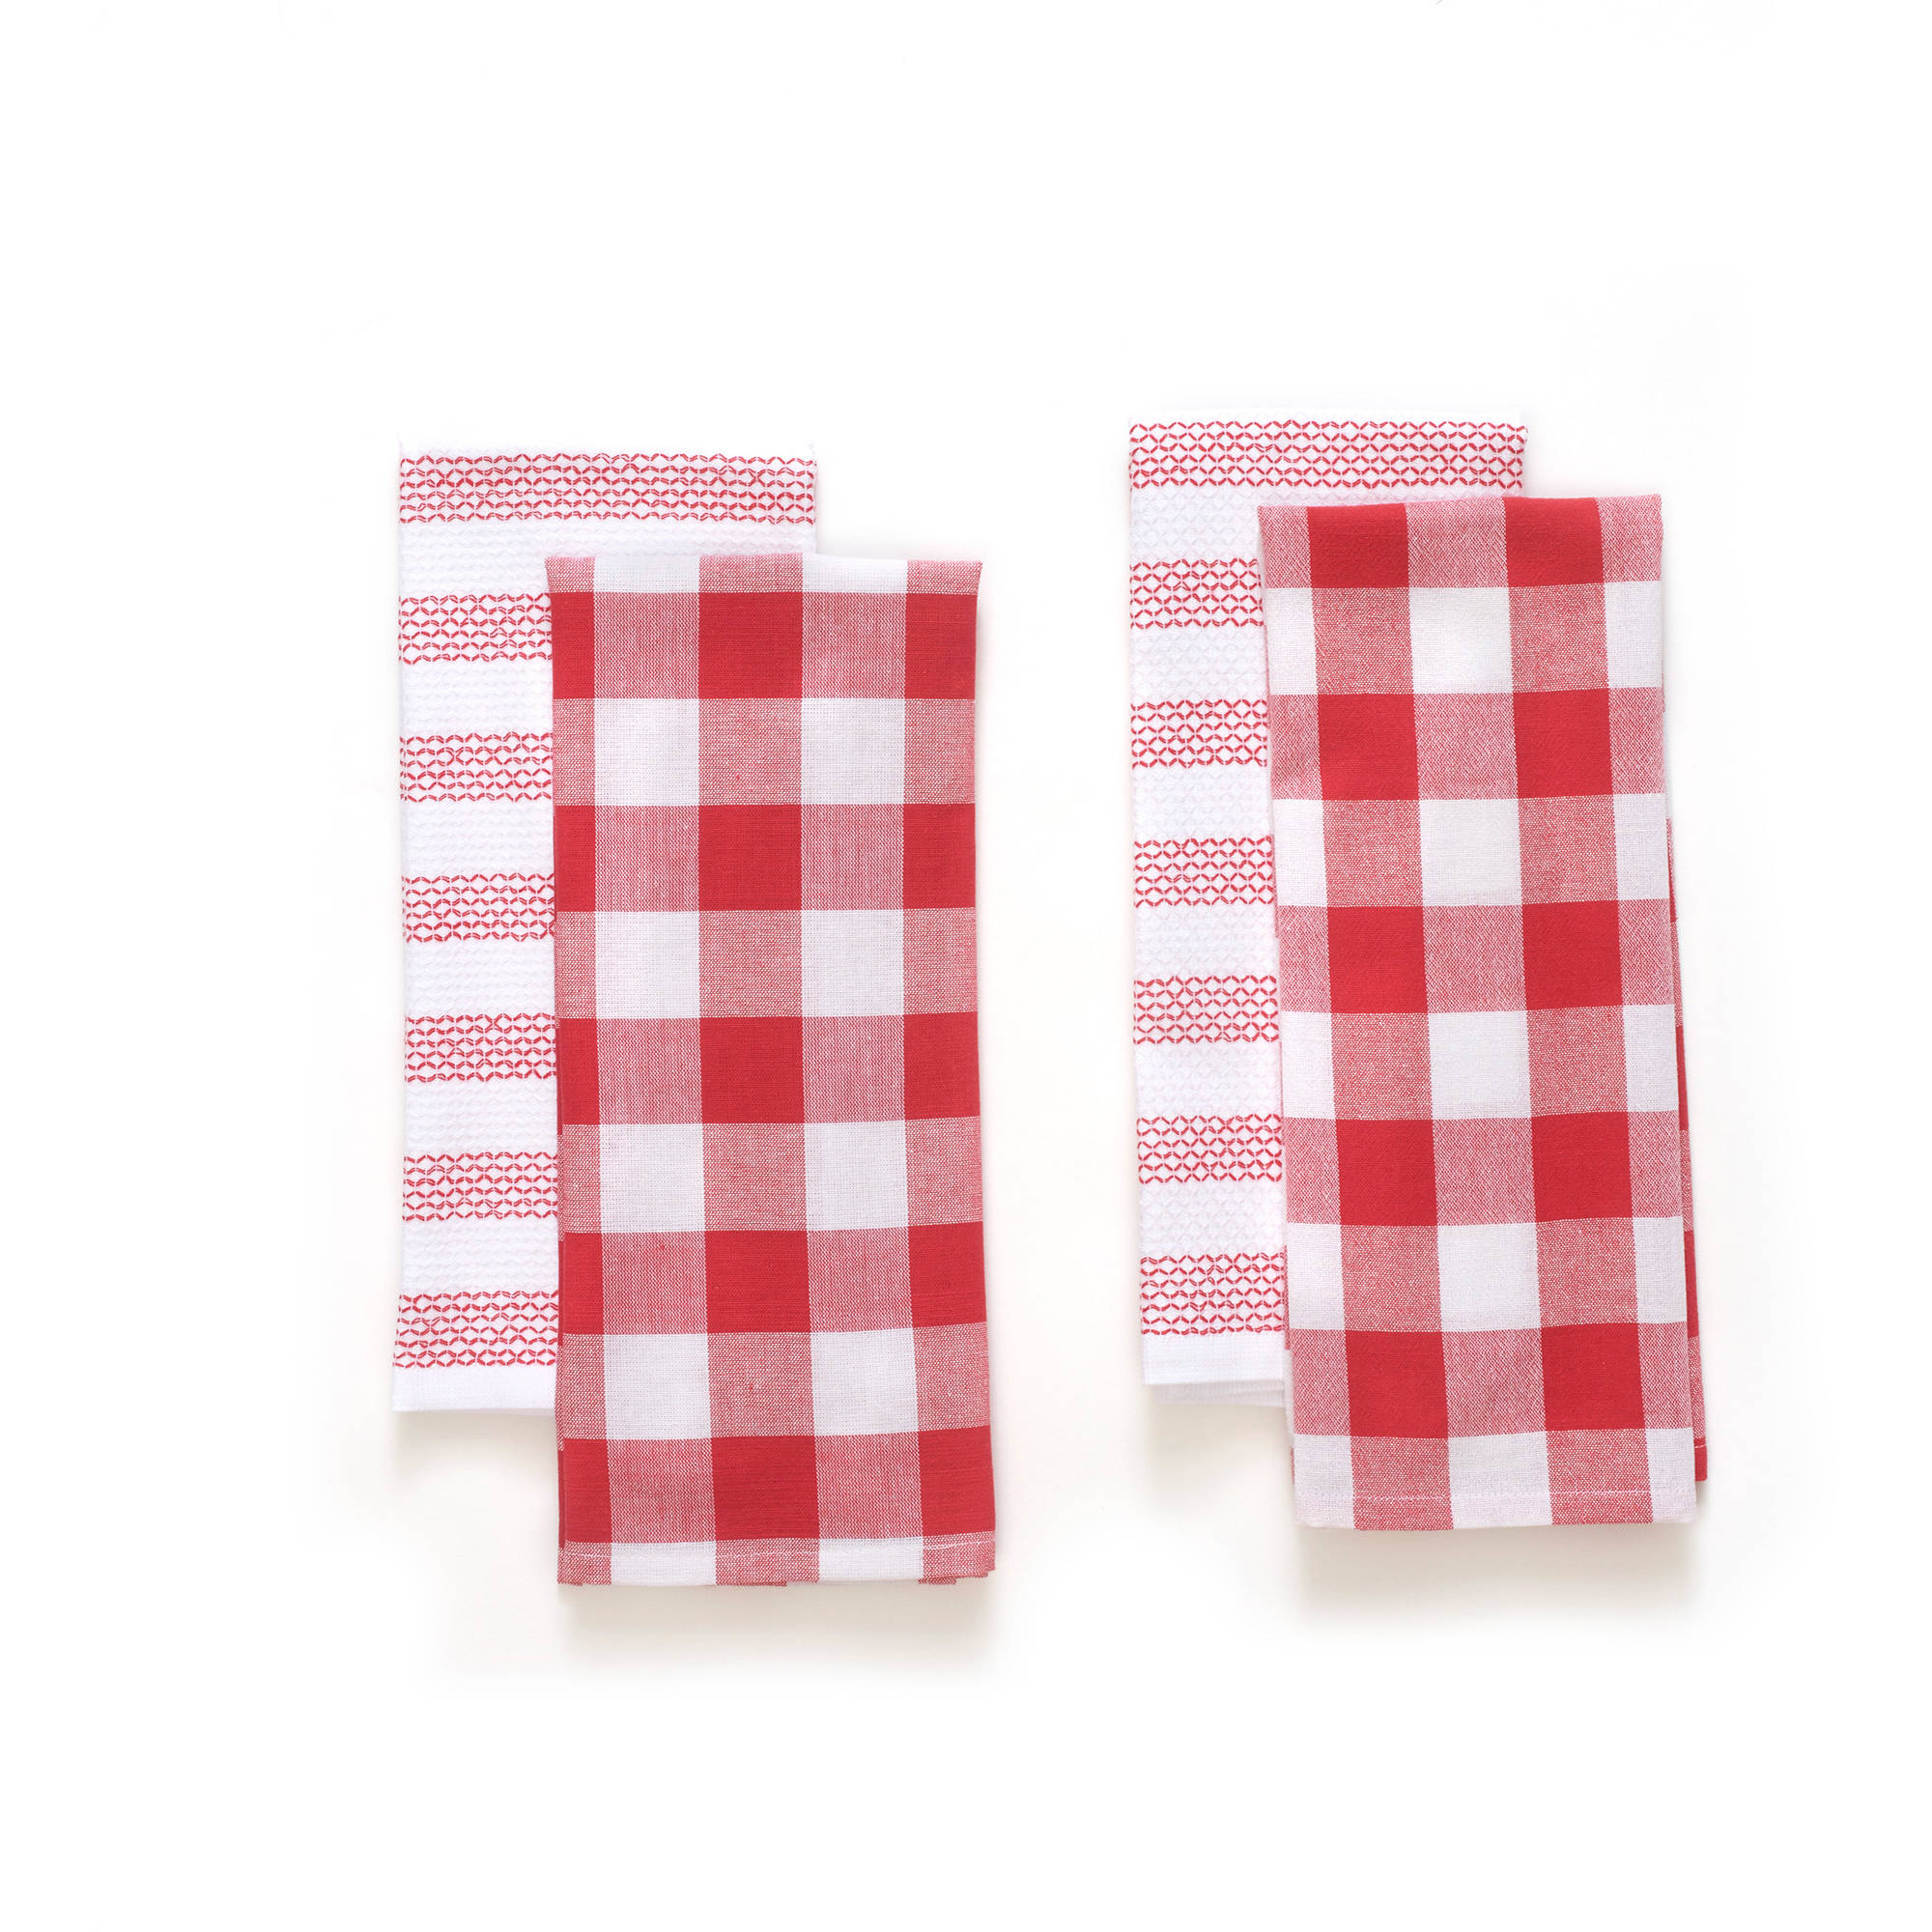 The Pioneer Woman Honeycomb Kitchen Towel Set, 4pk, Stripe